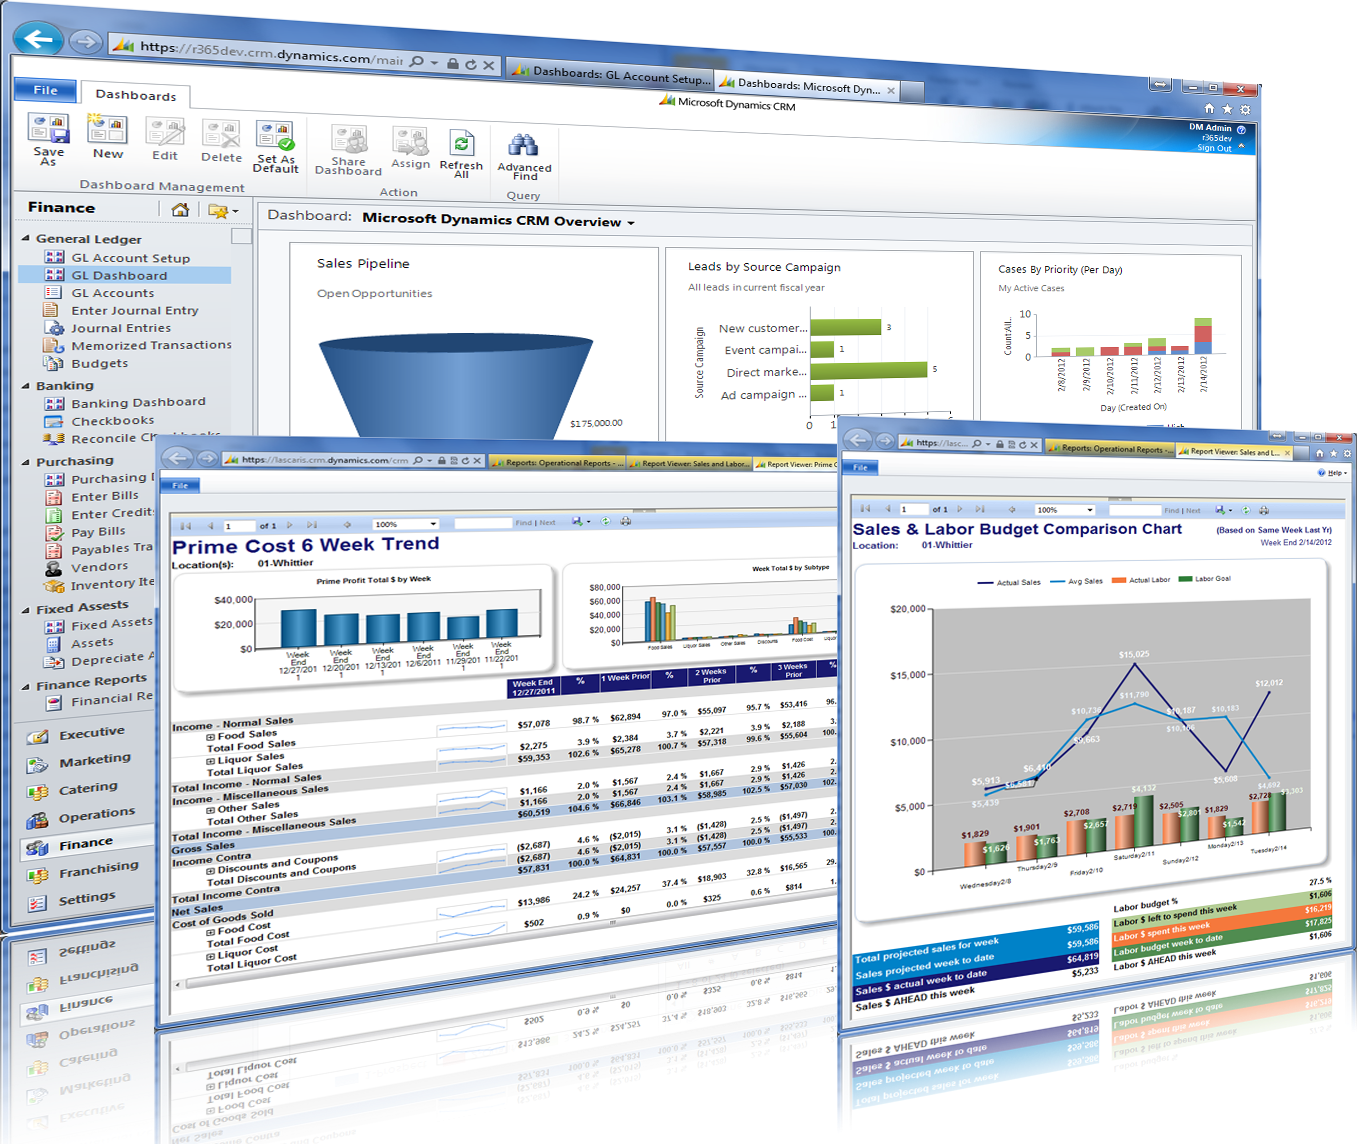 Best Free Accounting Software for Small Business 2015